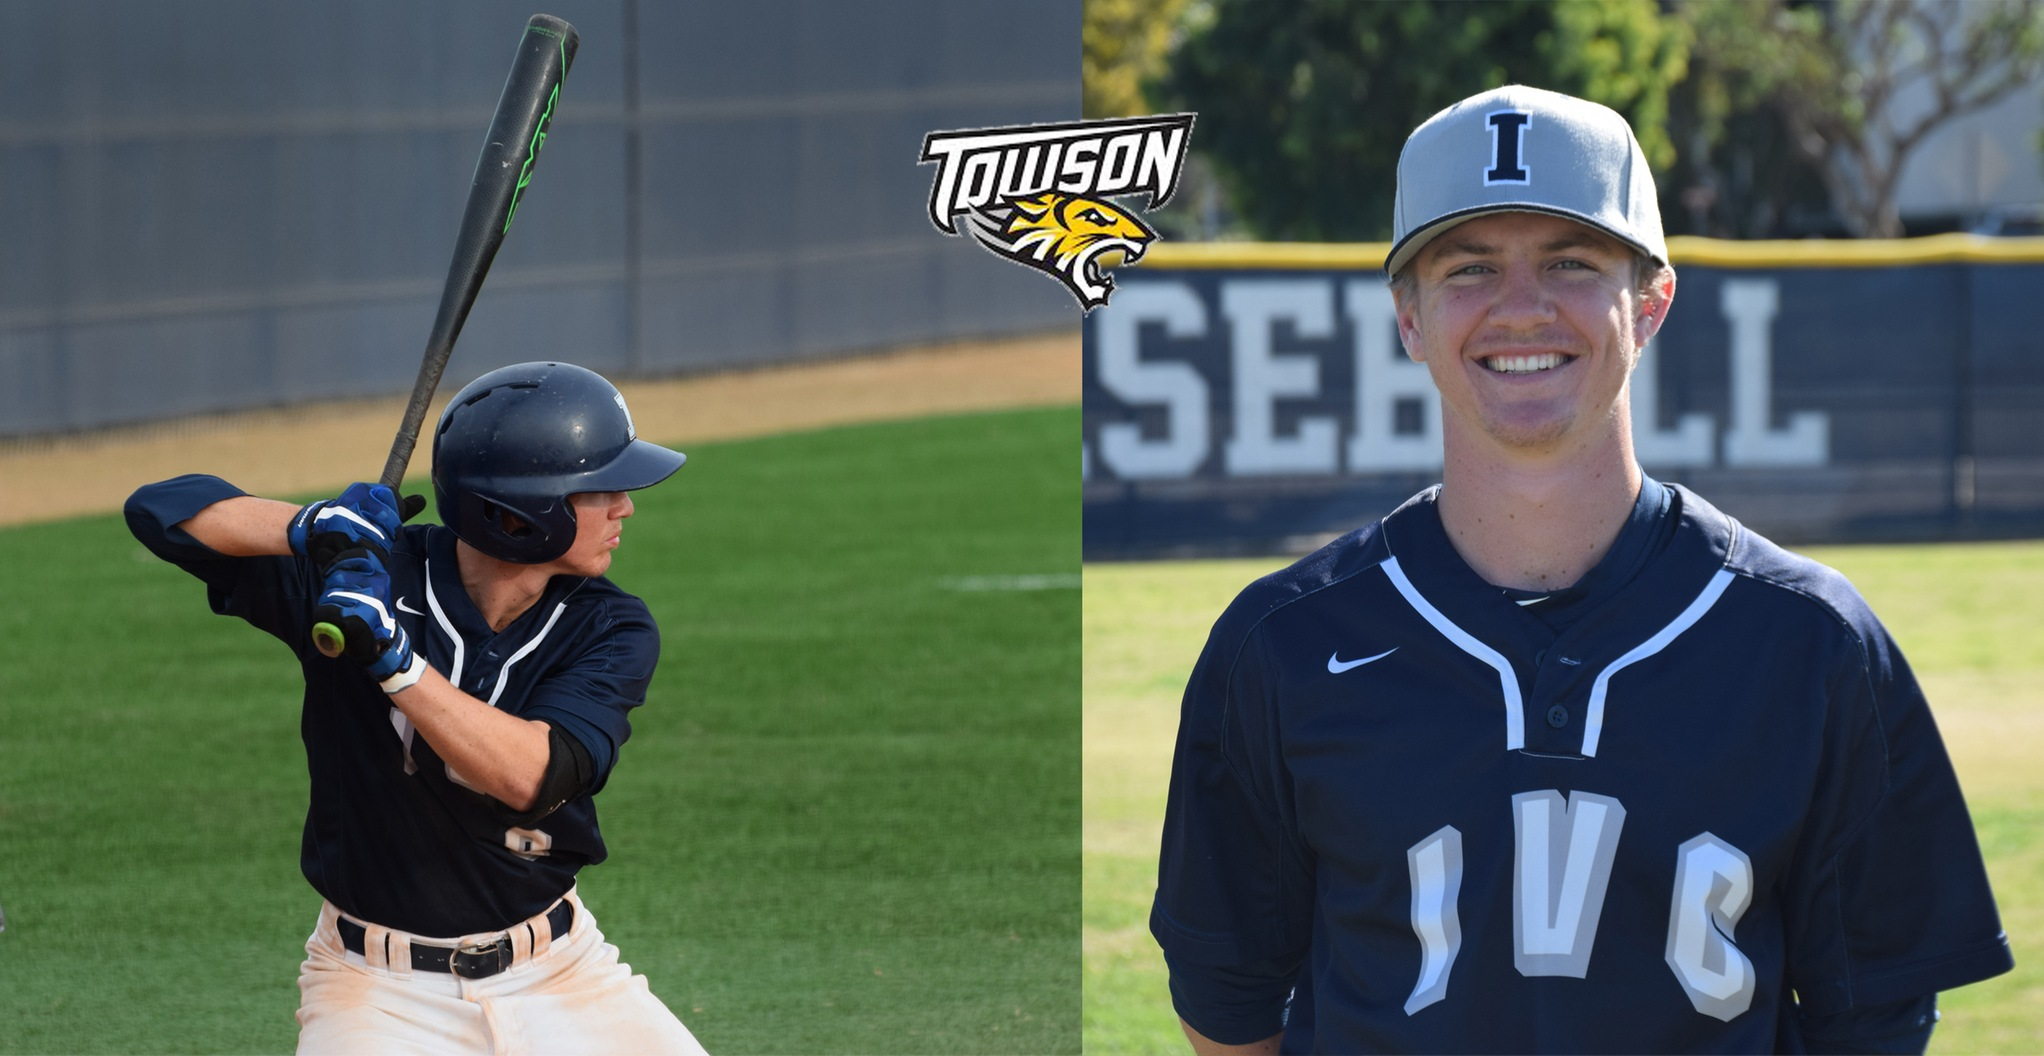 Sophomore infielder Colin Conroy headed to Towson State